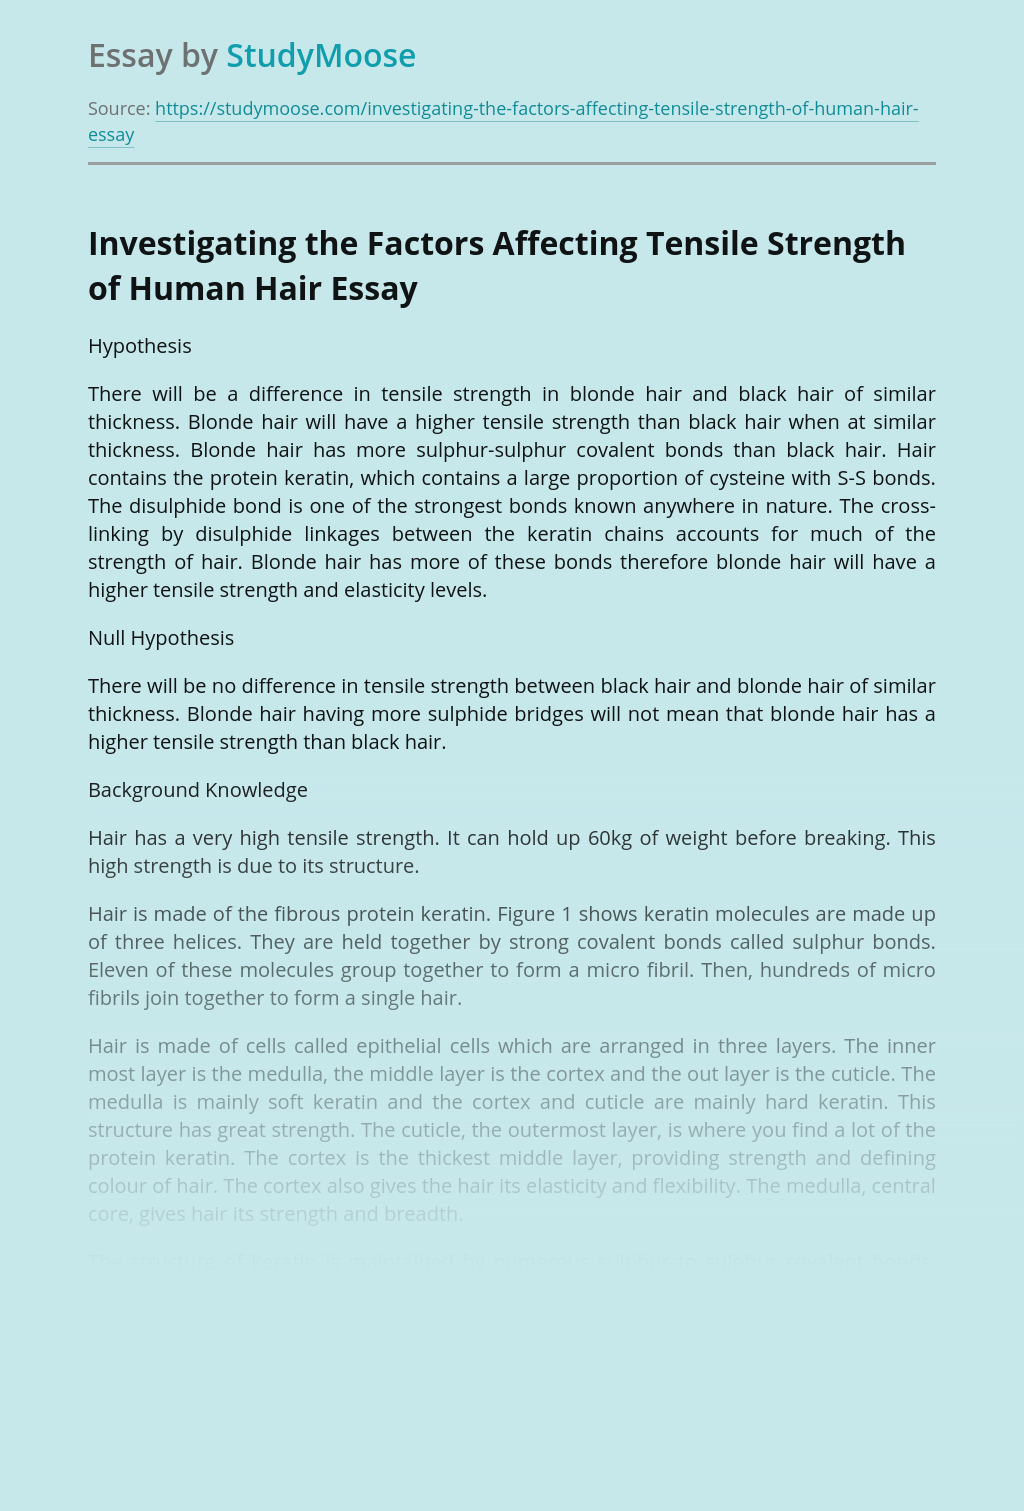 Investigating the Factors Affecting Tensile Strength of Human Hair